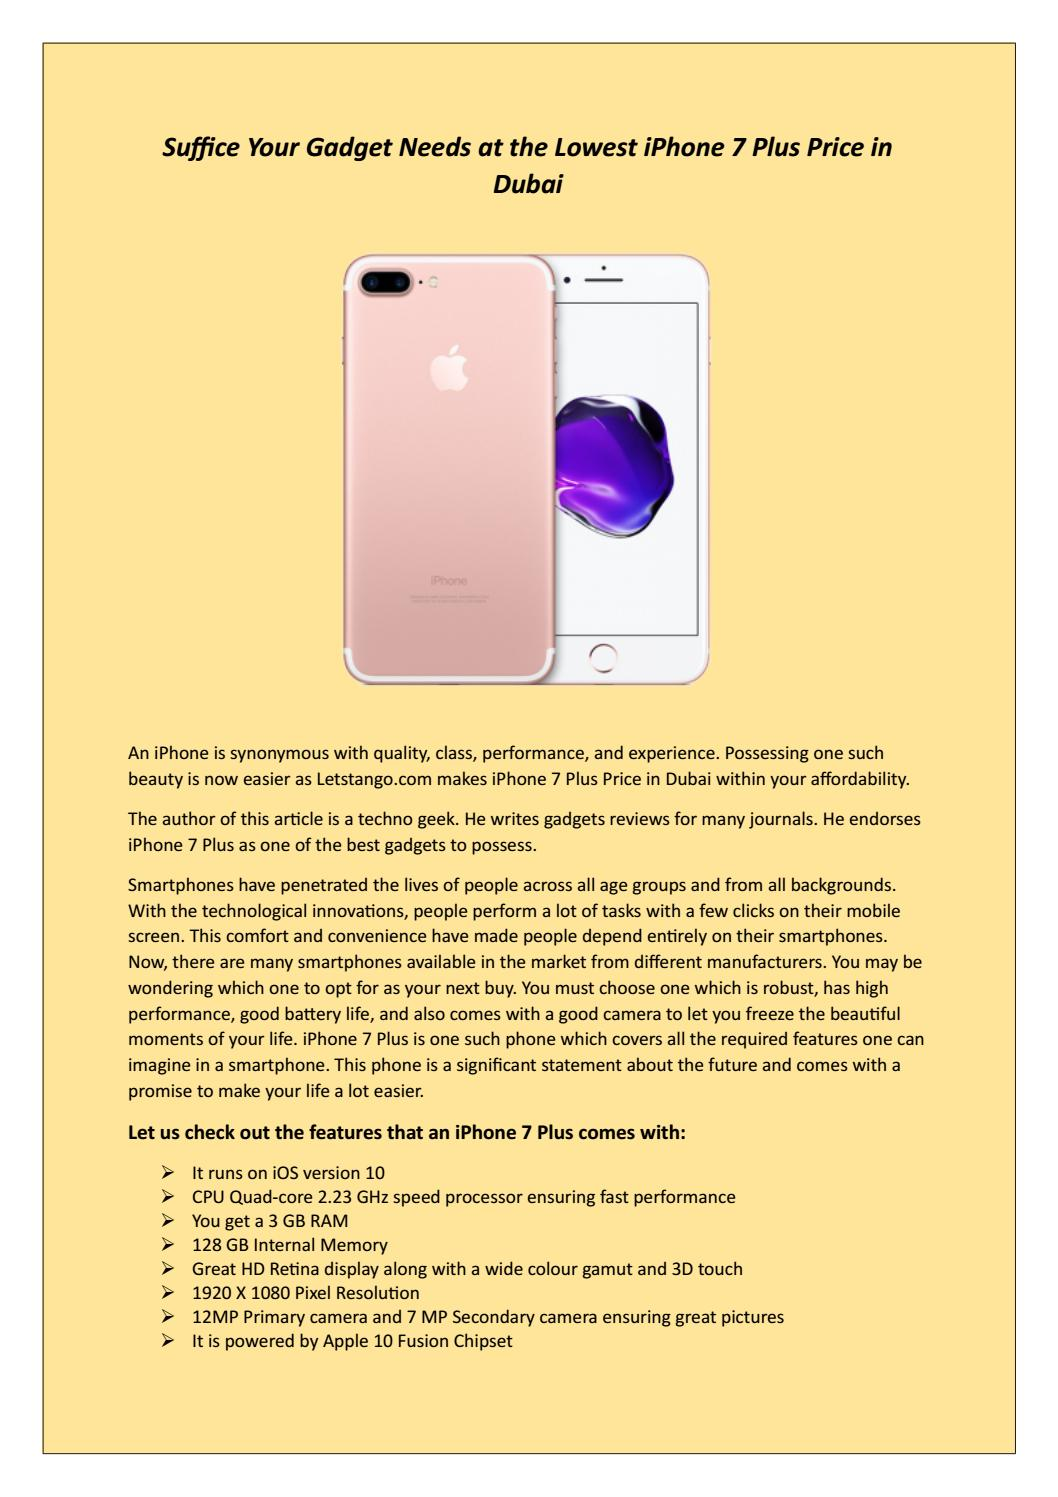 Suffice your gadget needs at the lowest iphone 7 plus price